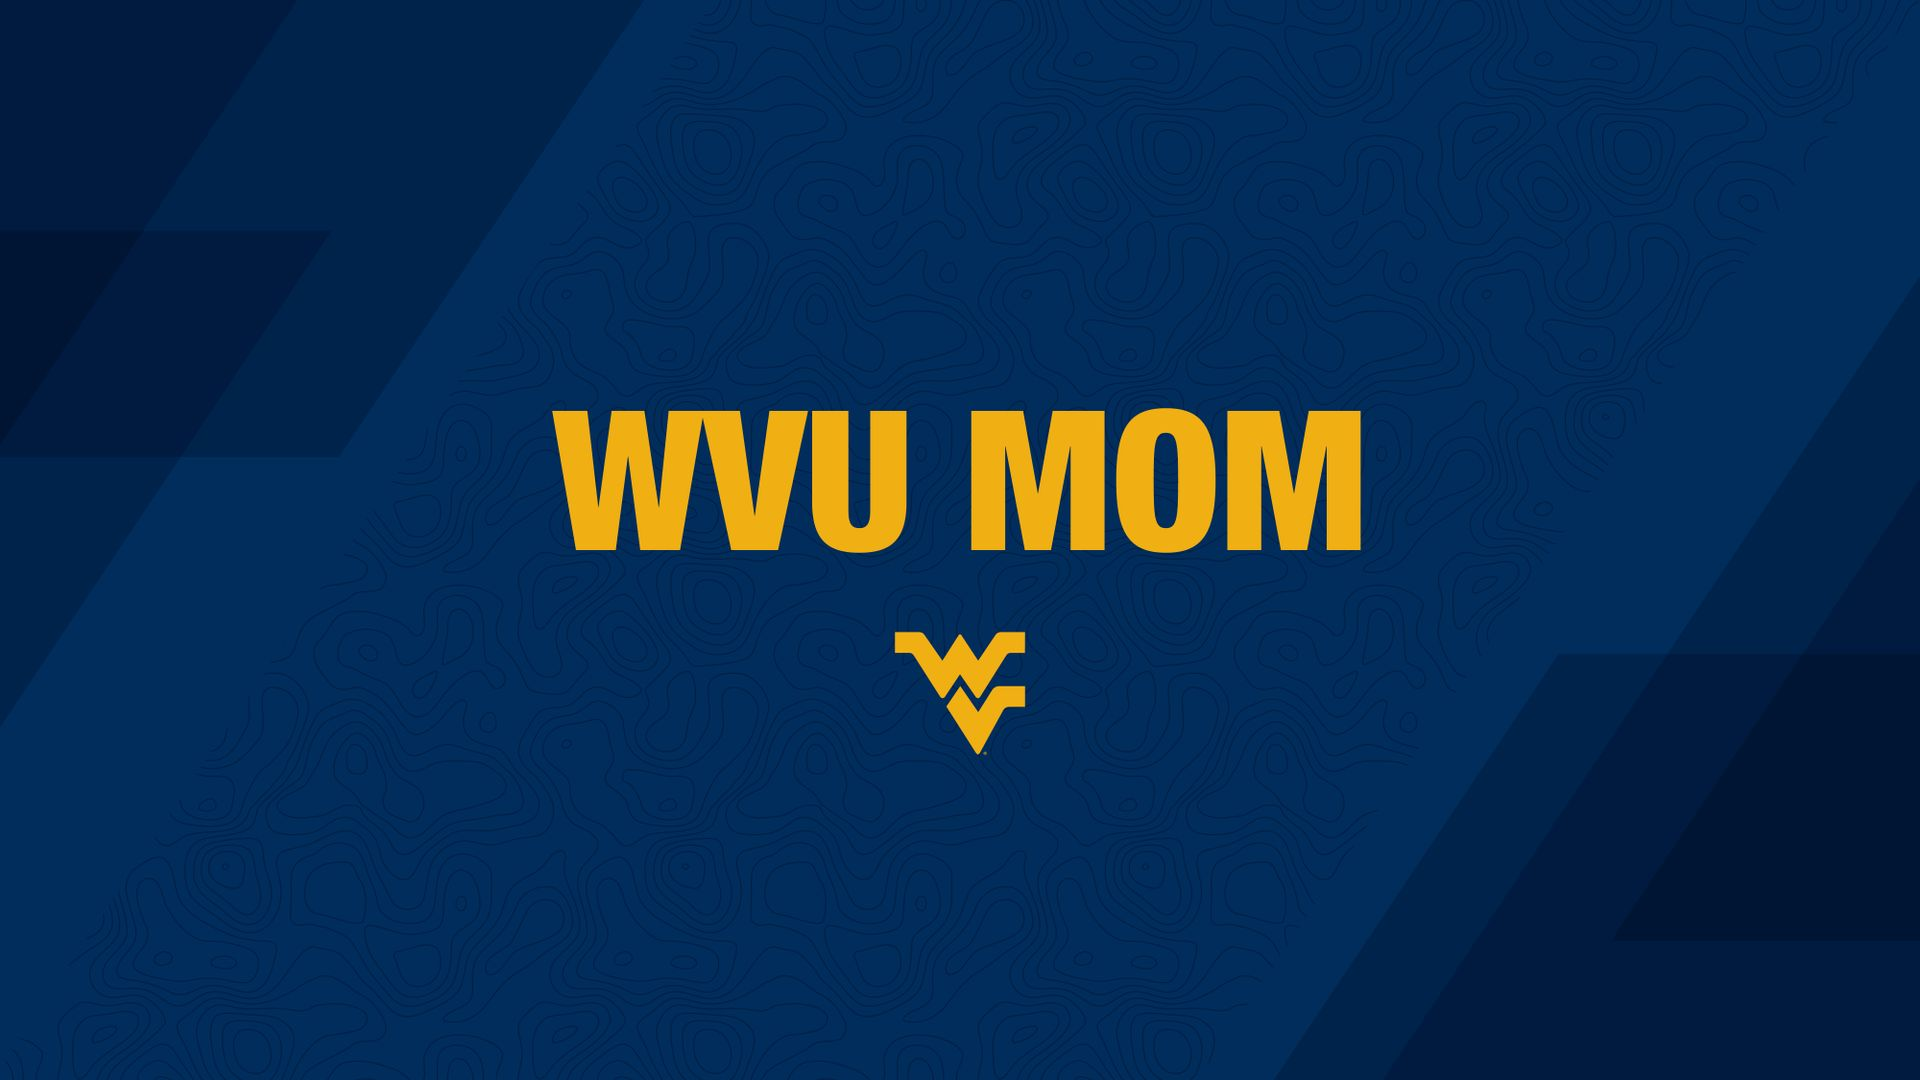 WVU Mom PC or tablet wallpaper